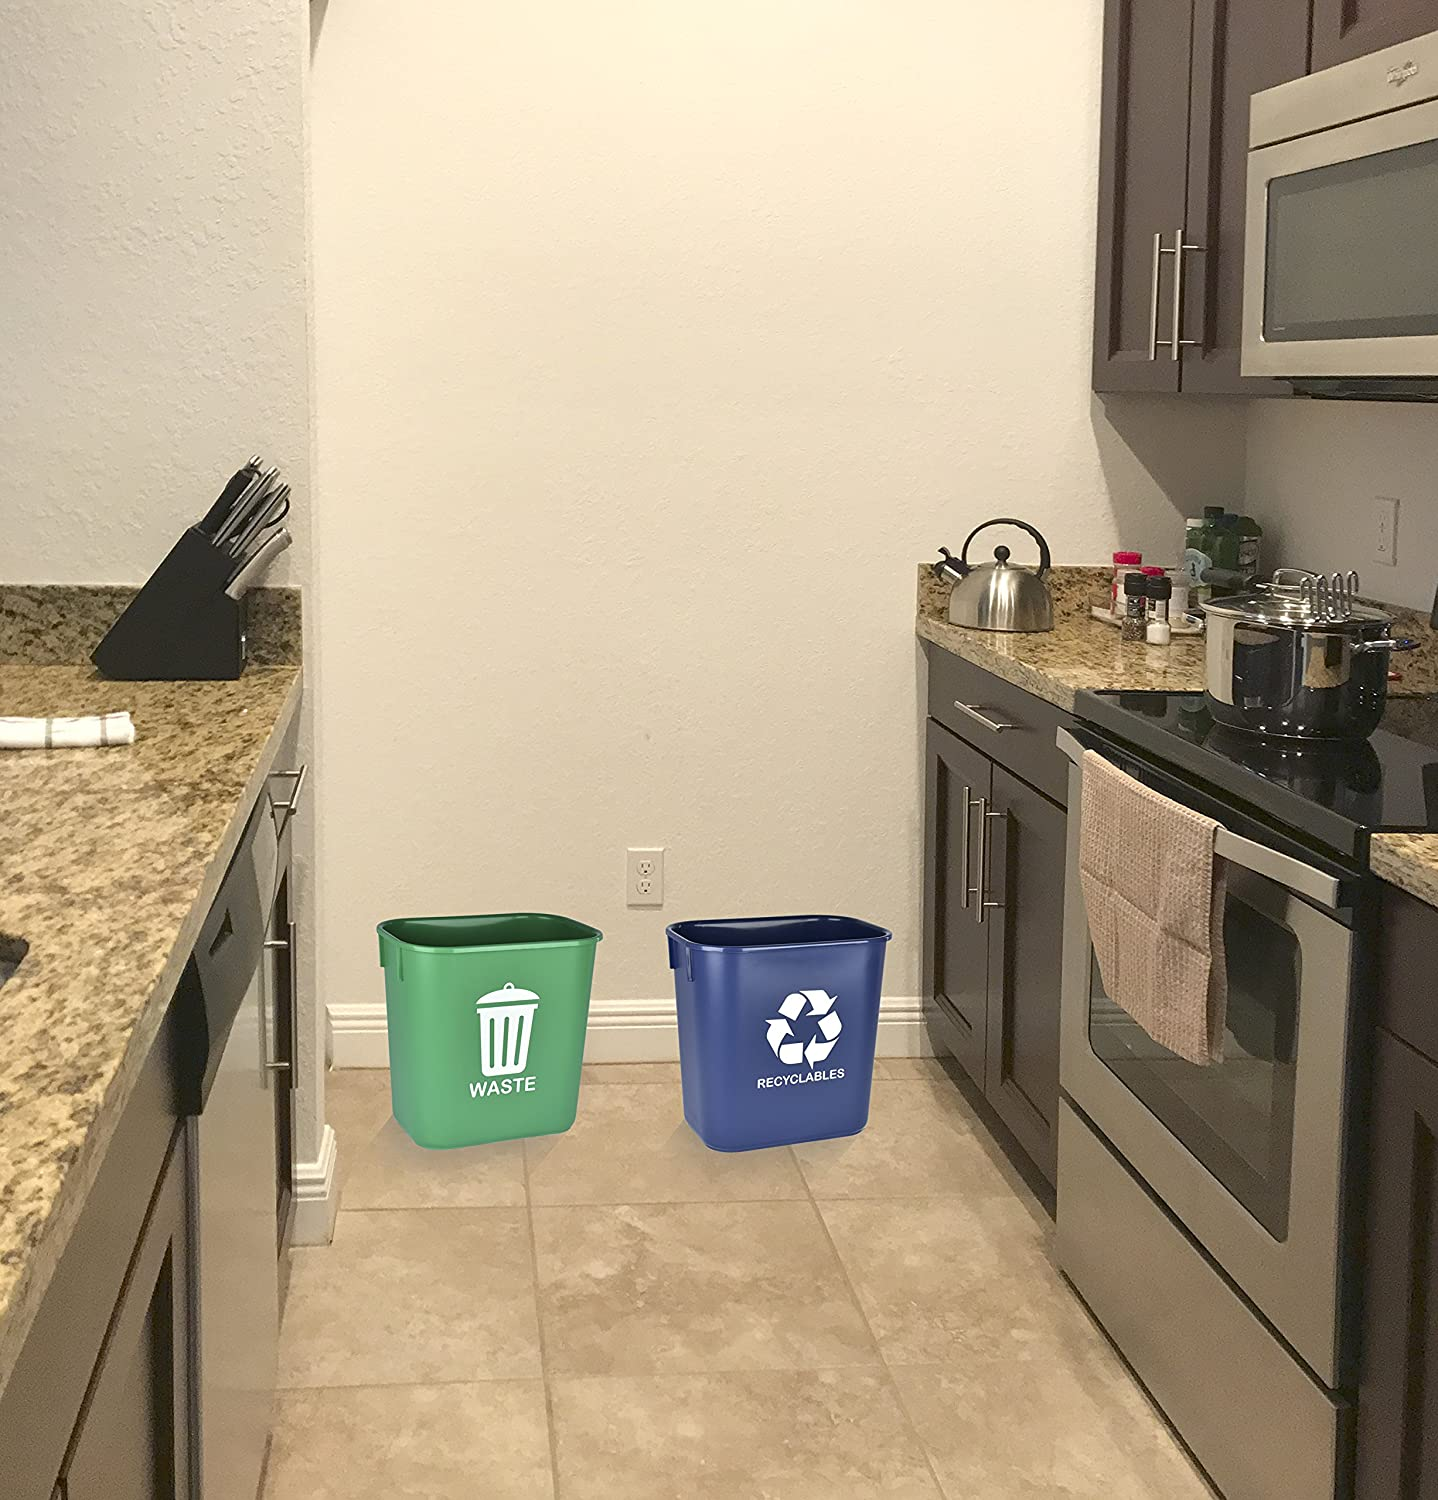 2 Units 578.3 Green and Blue Acrimet Wastebasket for Recycling and Waste 13QT